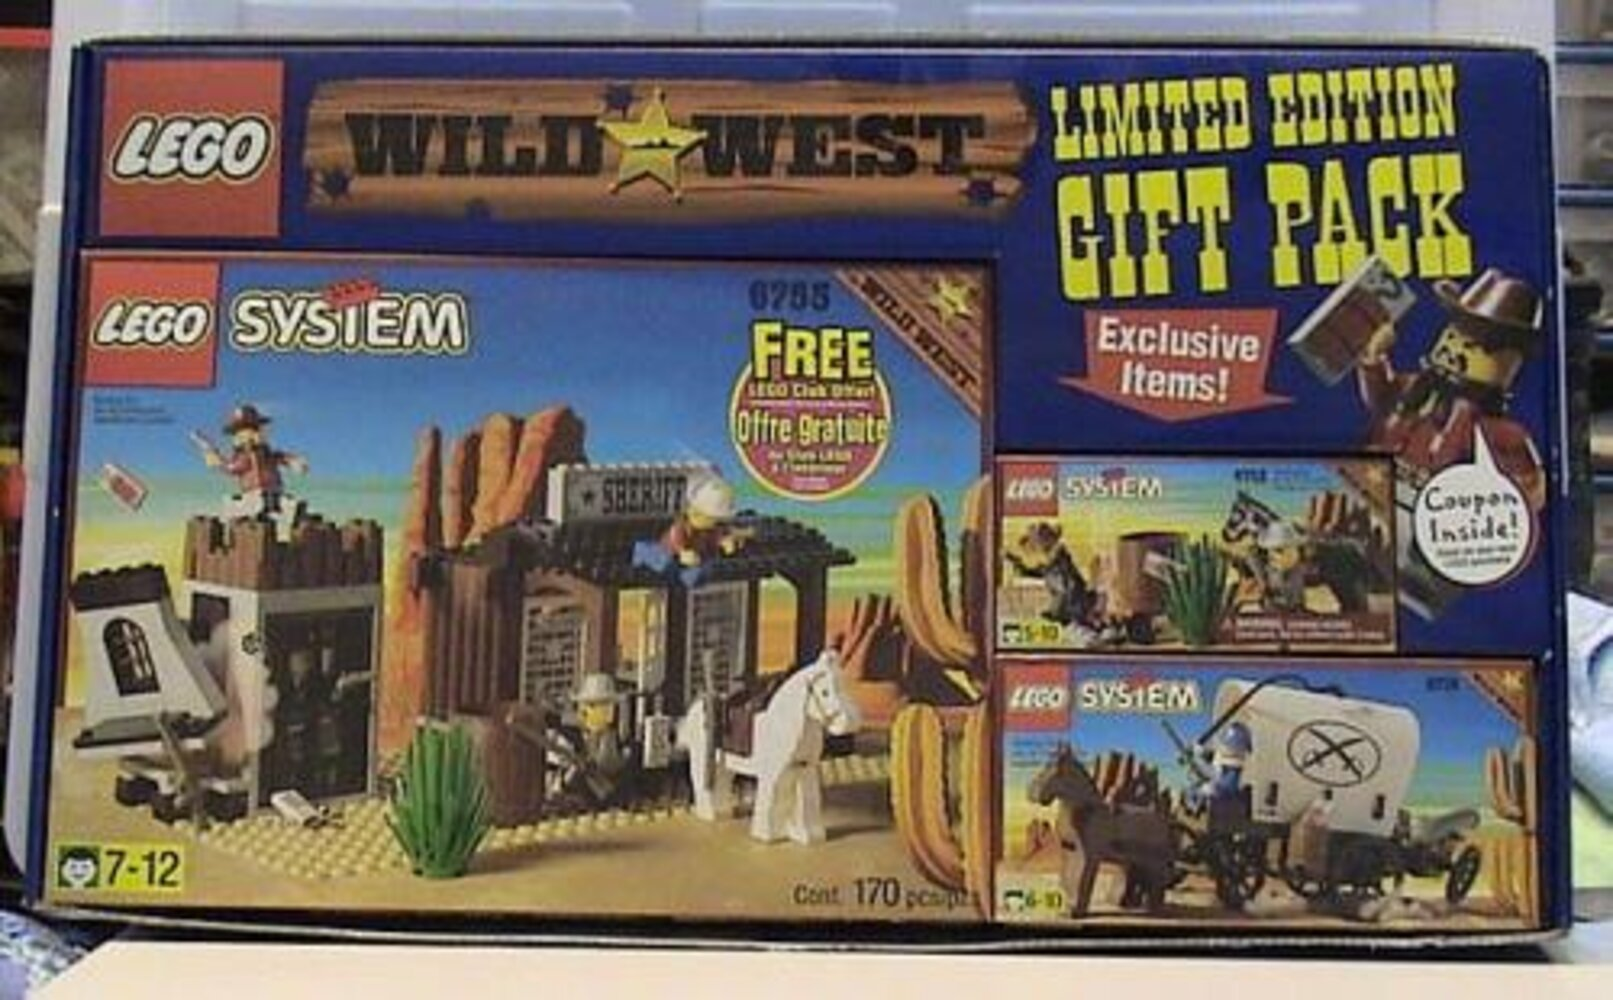 Wild West Limited Edition Gift Pack